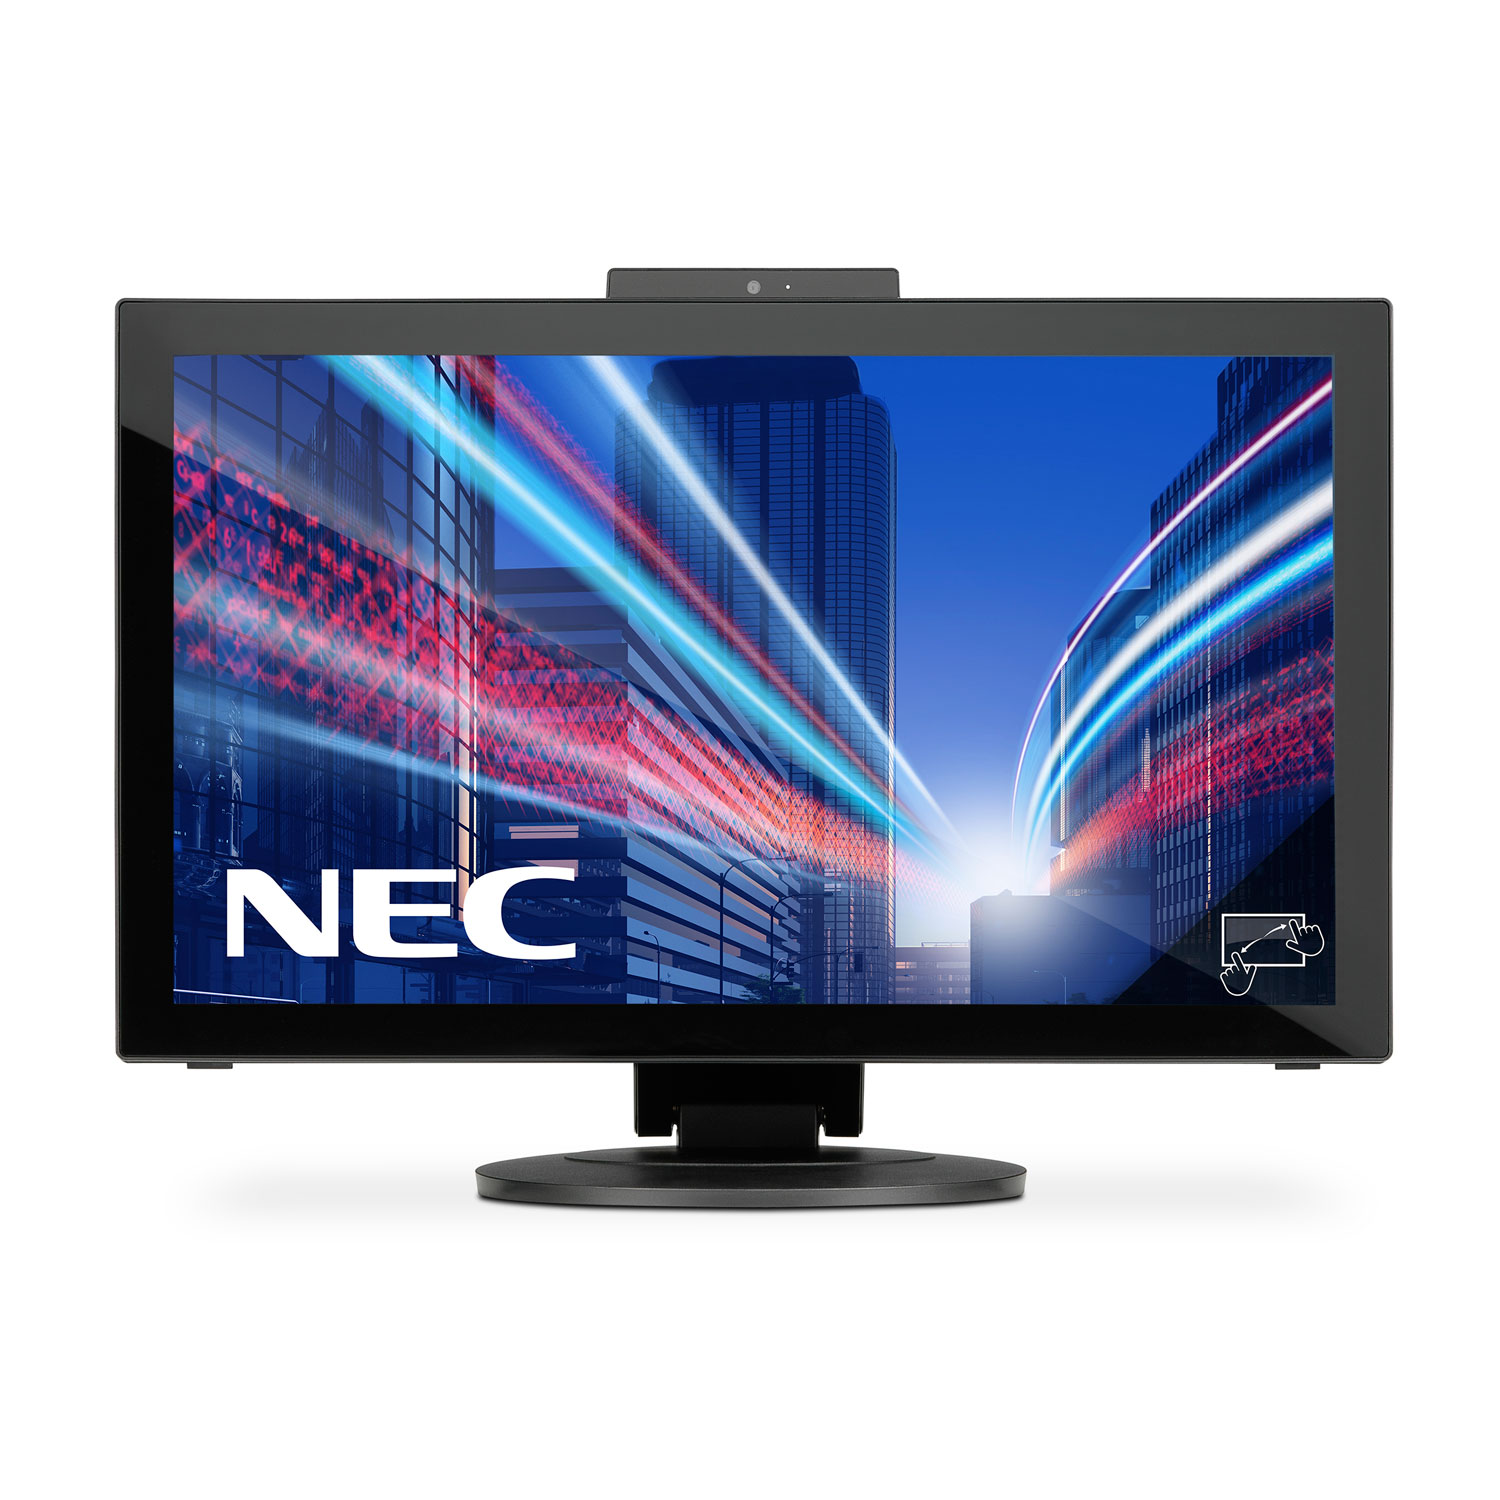 Nec 23 led multisync e232wmt multitouch ecran pc for Moniteur pc dalle ips